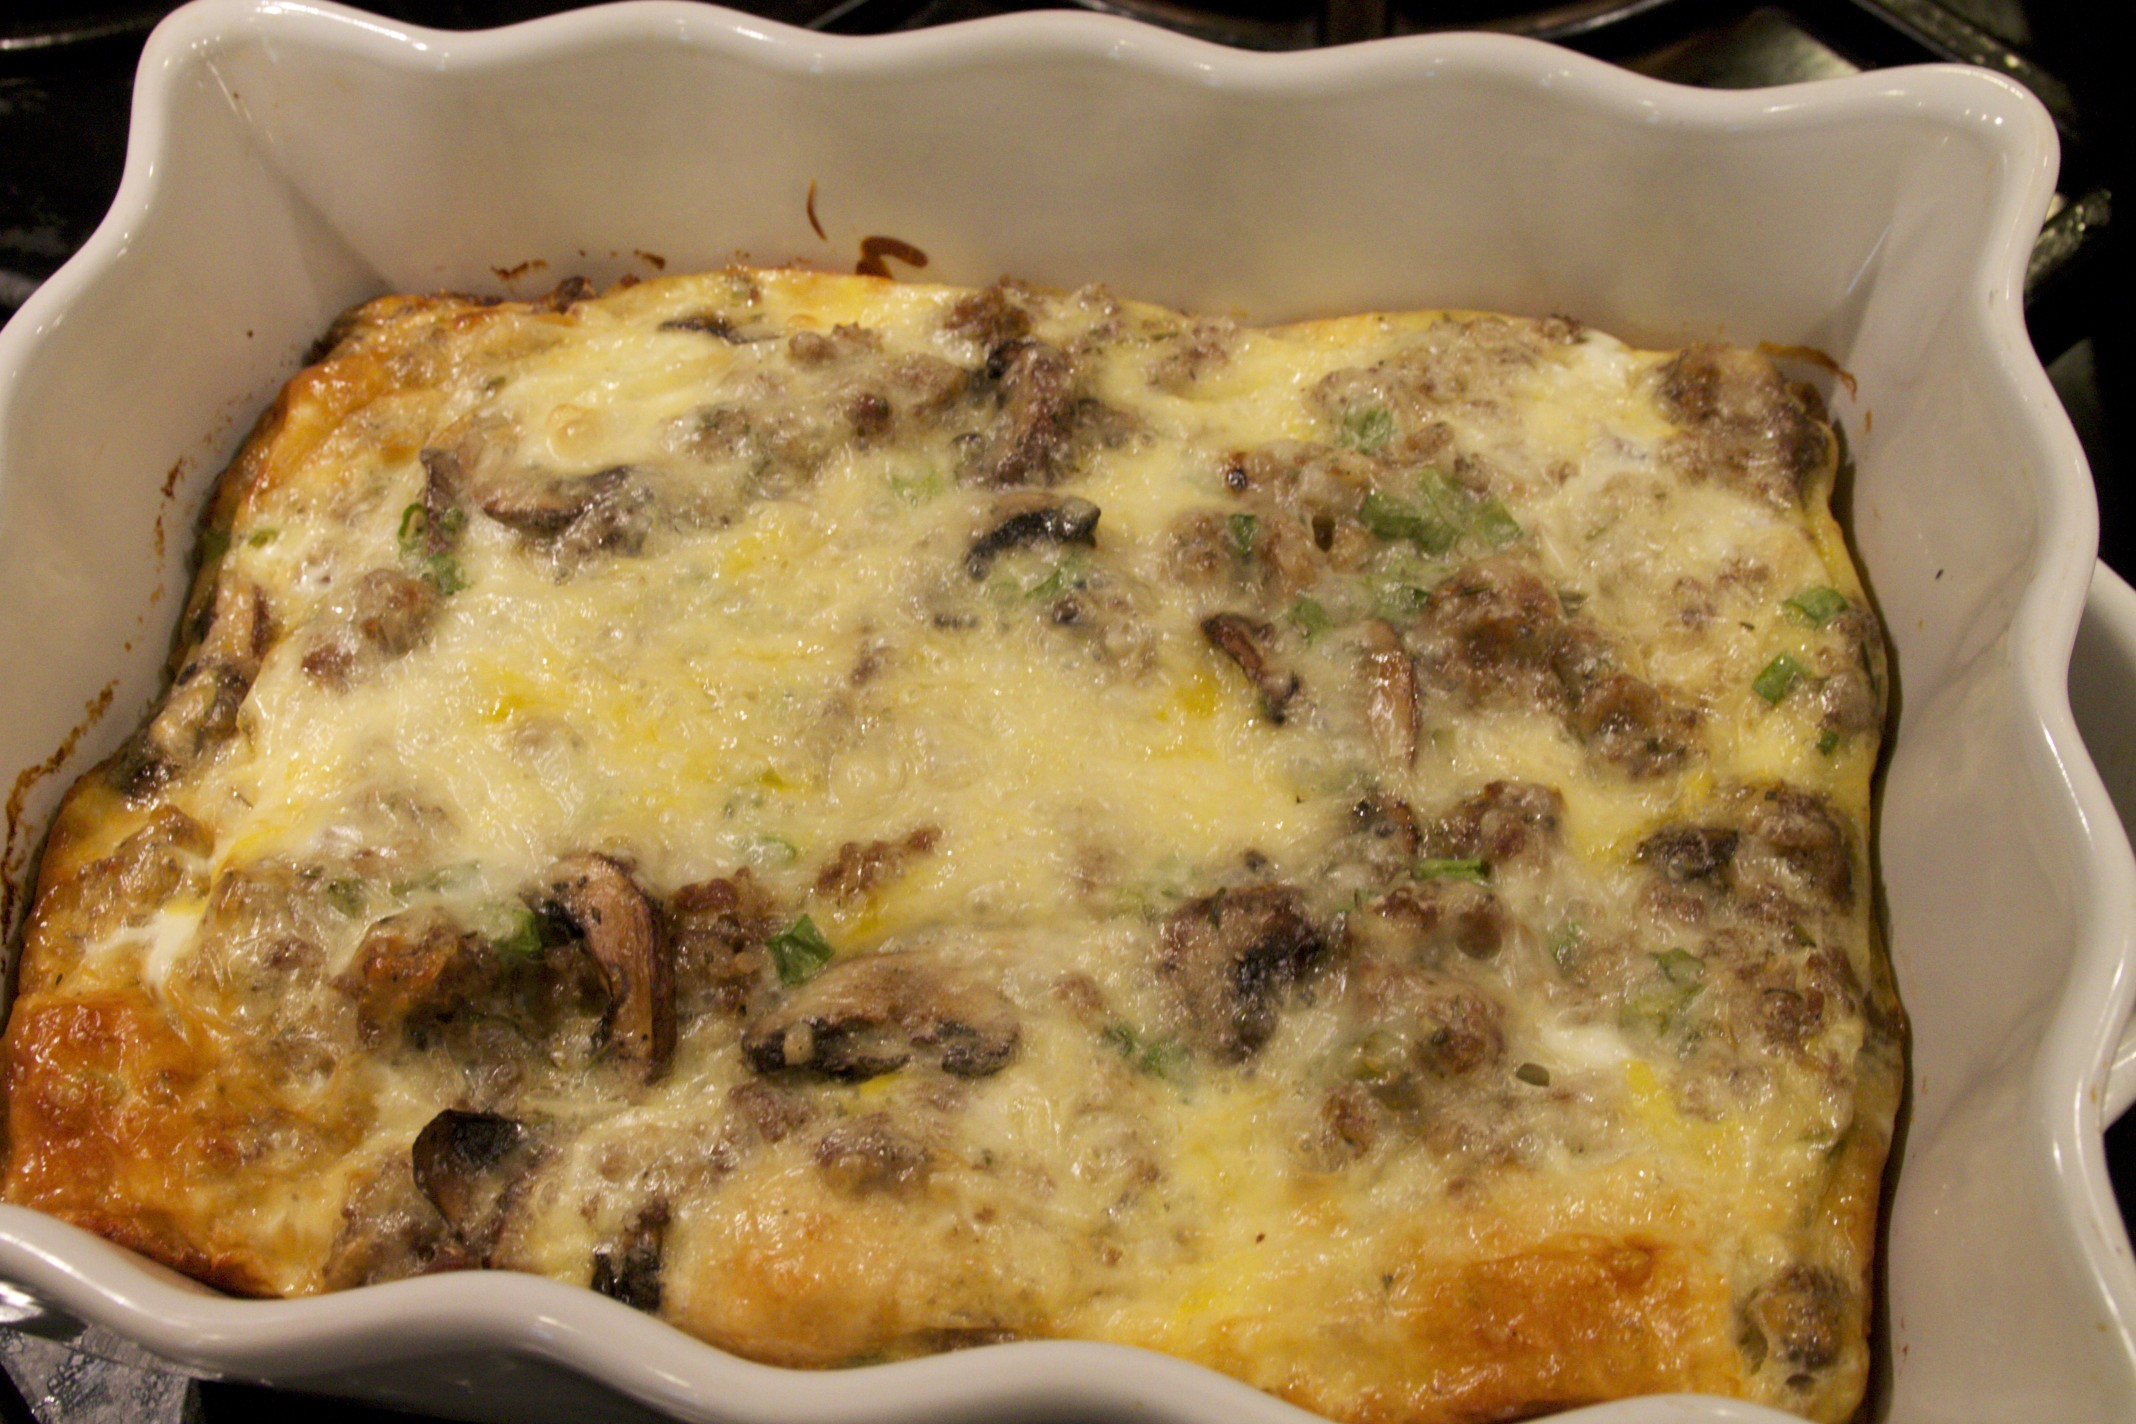 biscuit and egg breakfast casserole